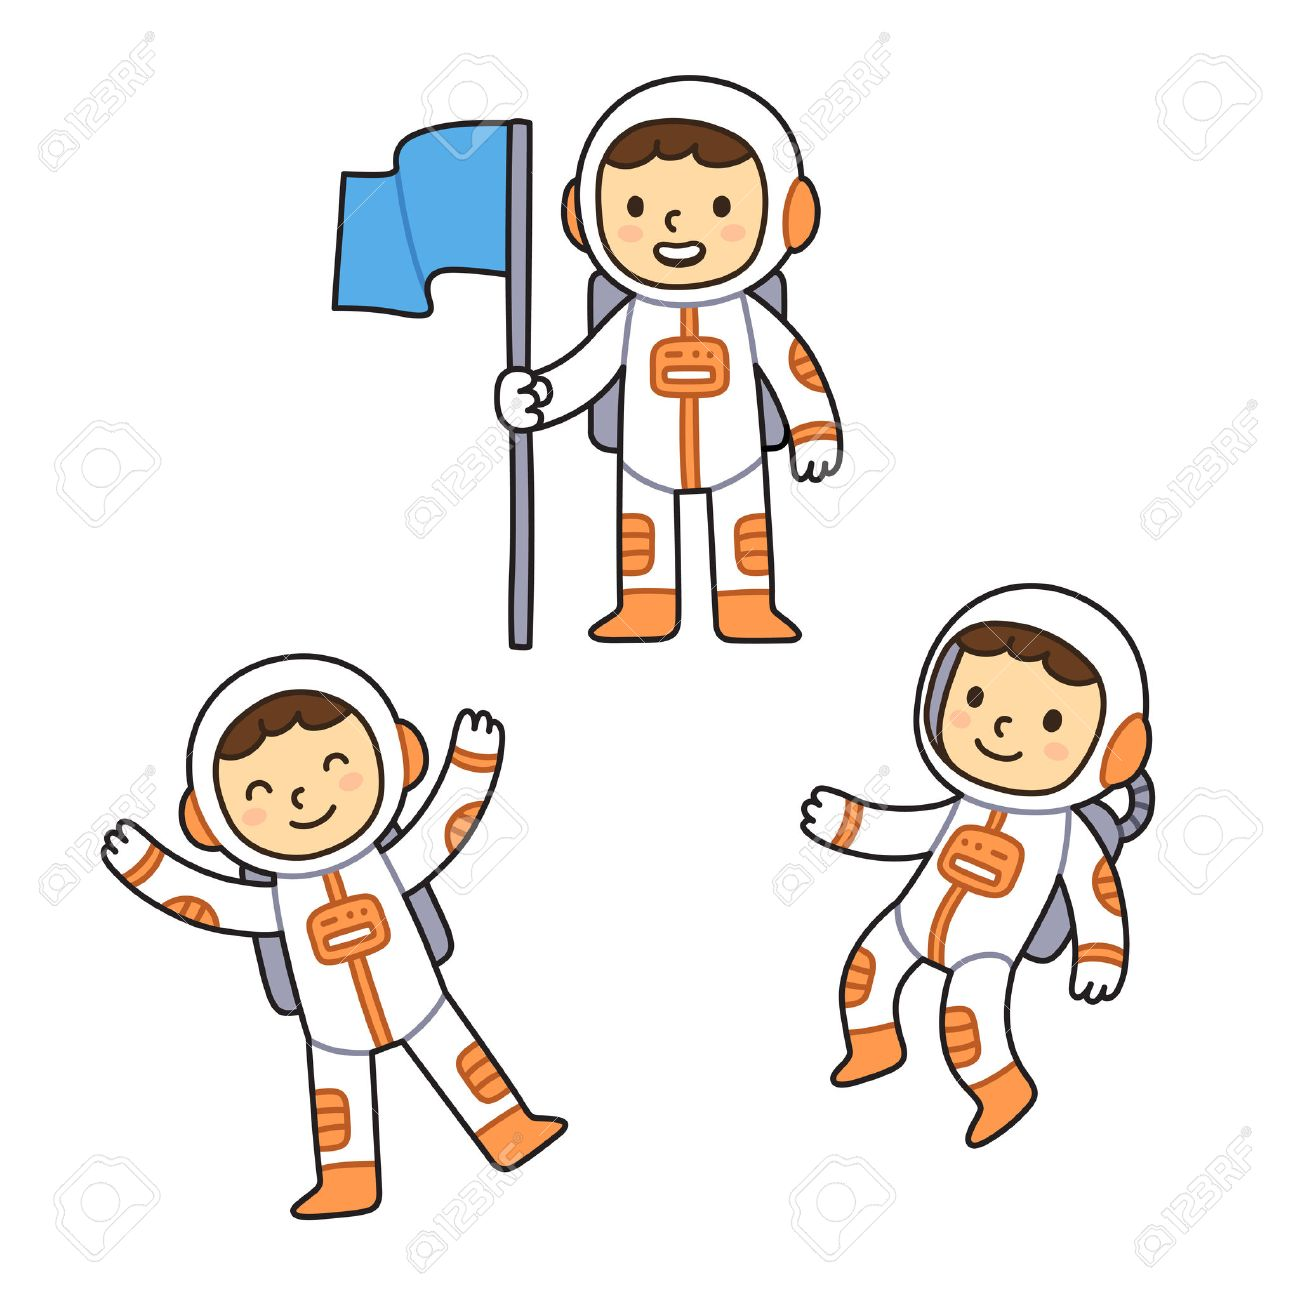 Cute cartoon astronaut set. Cartoon astronaut boy in different poses, floating in space and holding flag. - 54511055